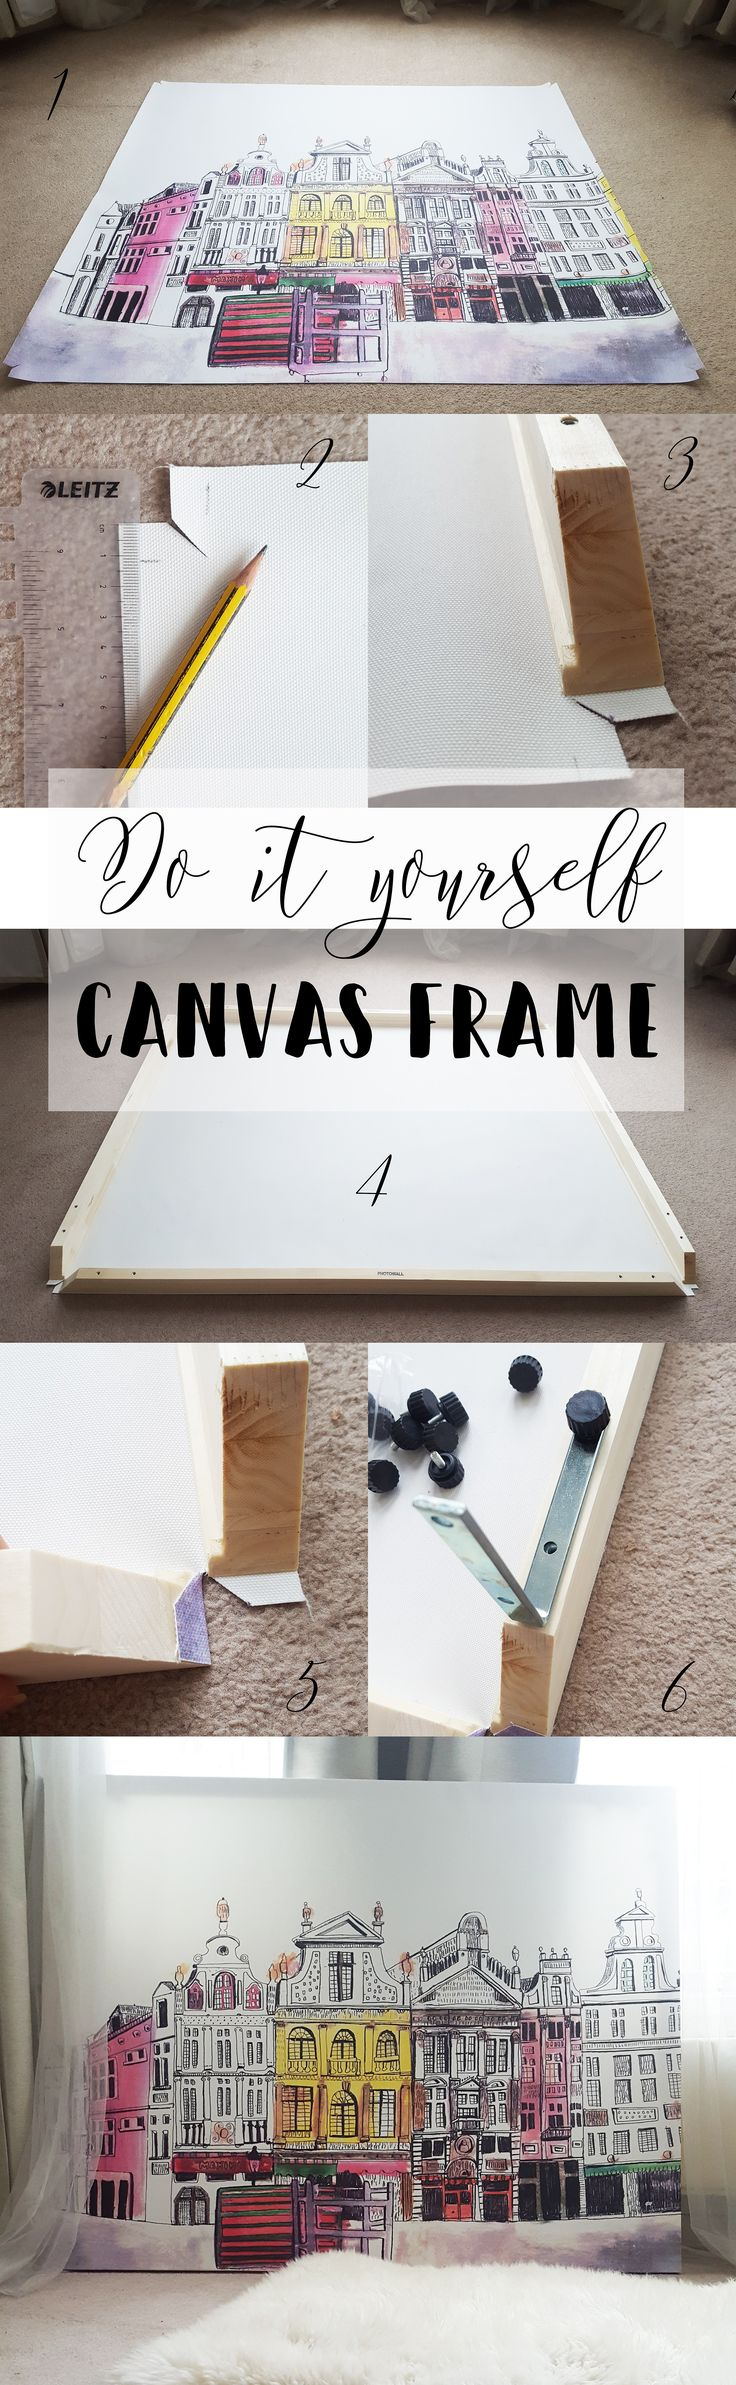 Oversized canvas from Photowall. Check out how I make it in 6 simple steps!#Photowall,#Brussels,#homeinspiration,#brusselspainting,#cosyhome,#homedecor,#pinkdecor#diycanvas#wallart#homeinspo